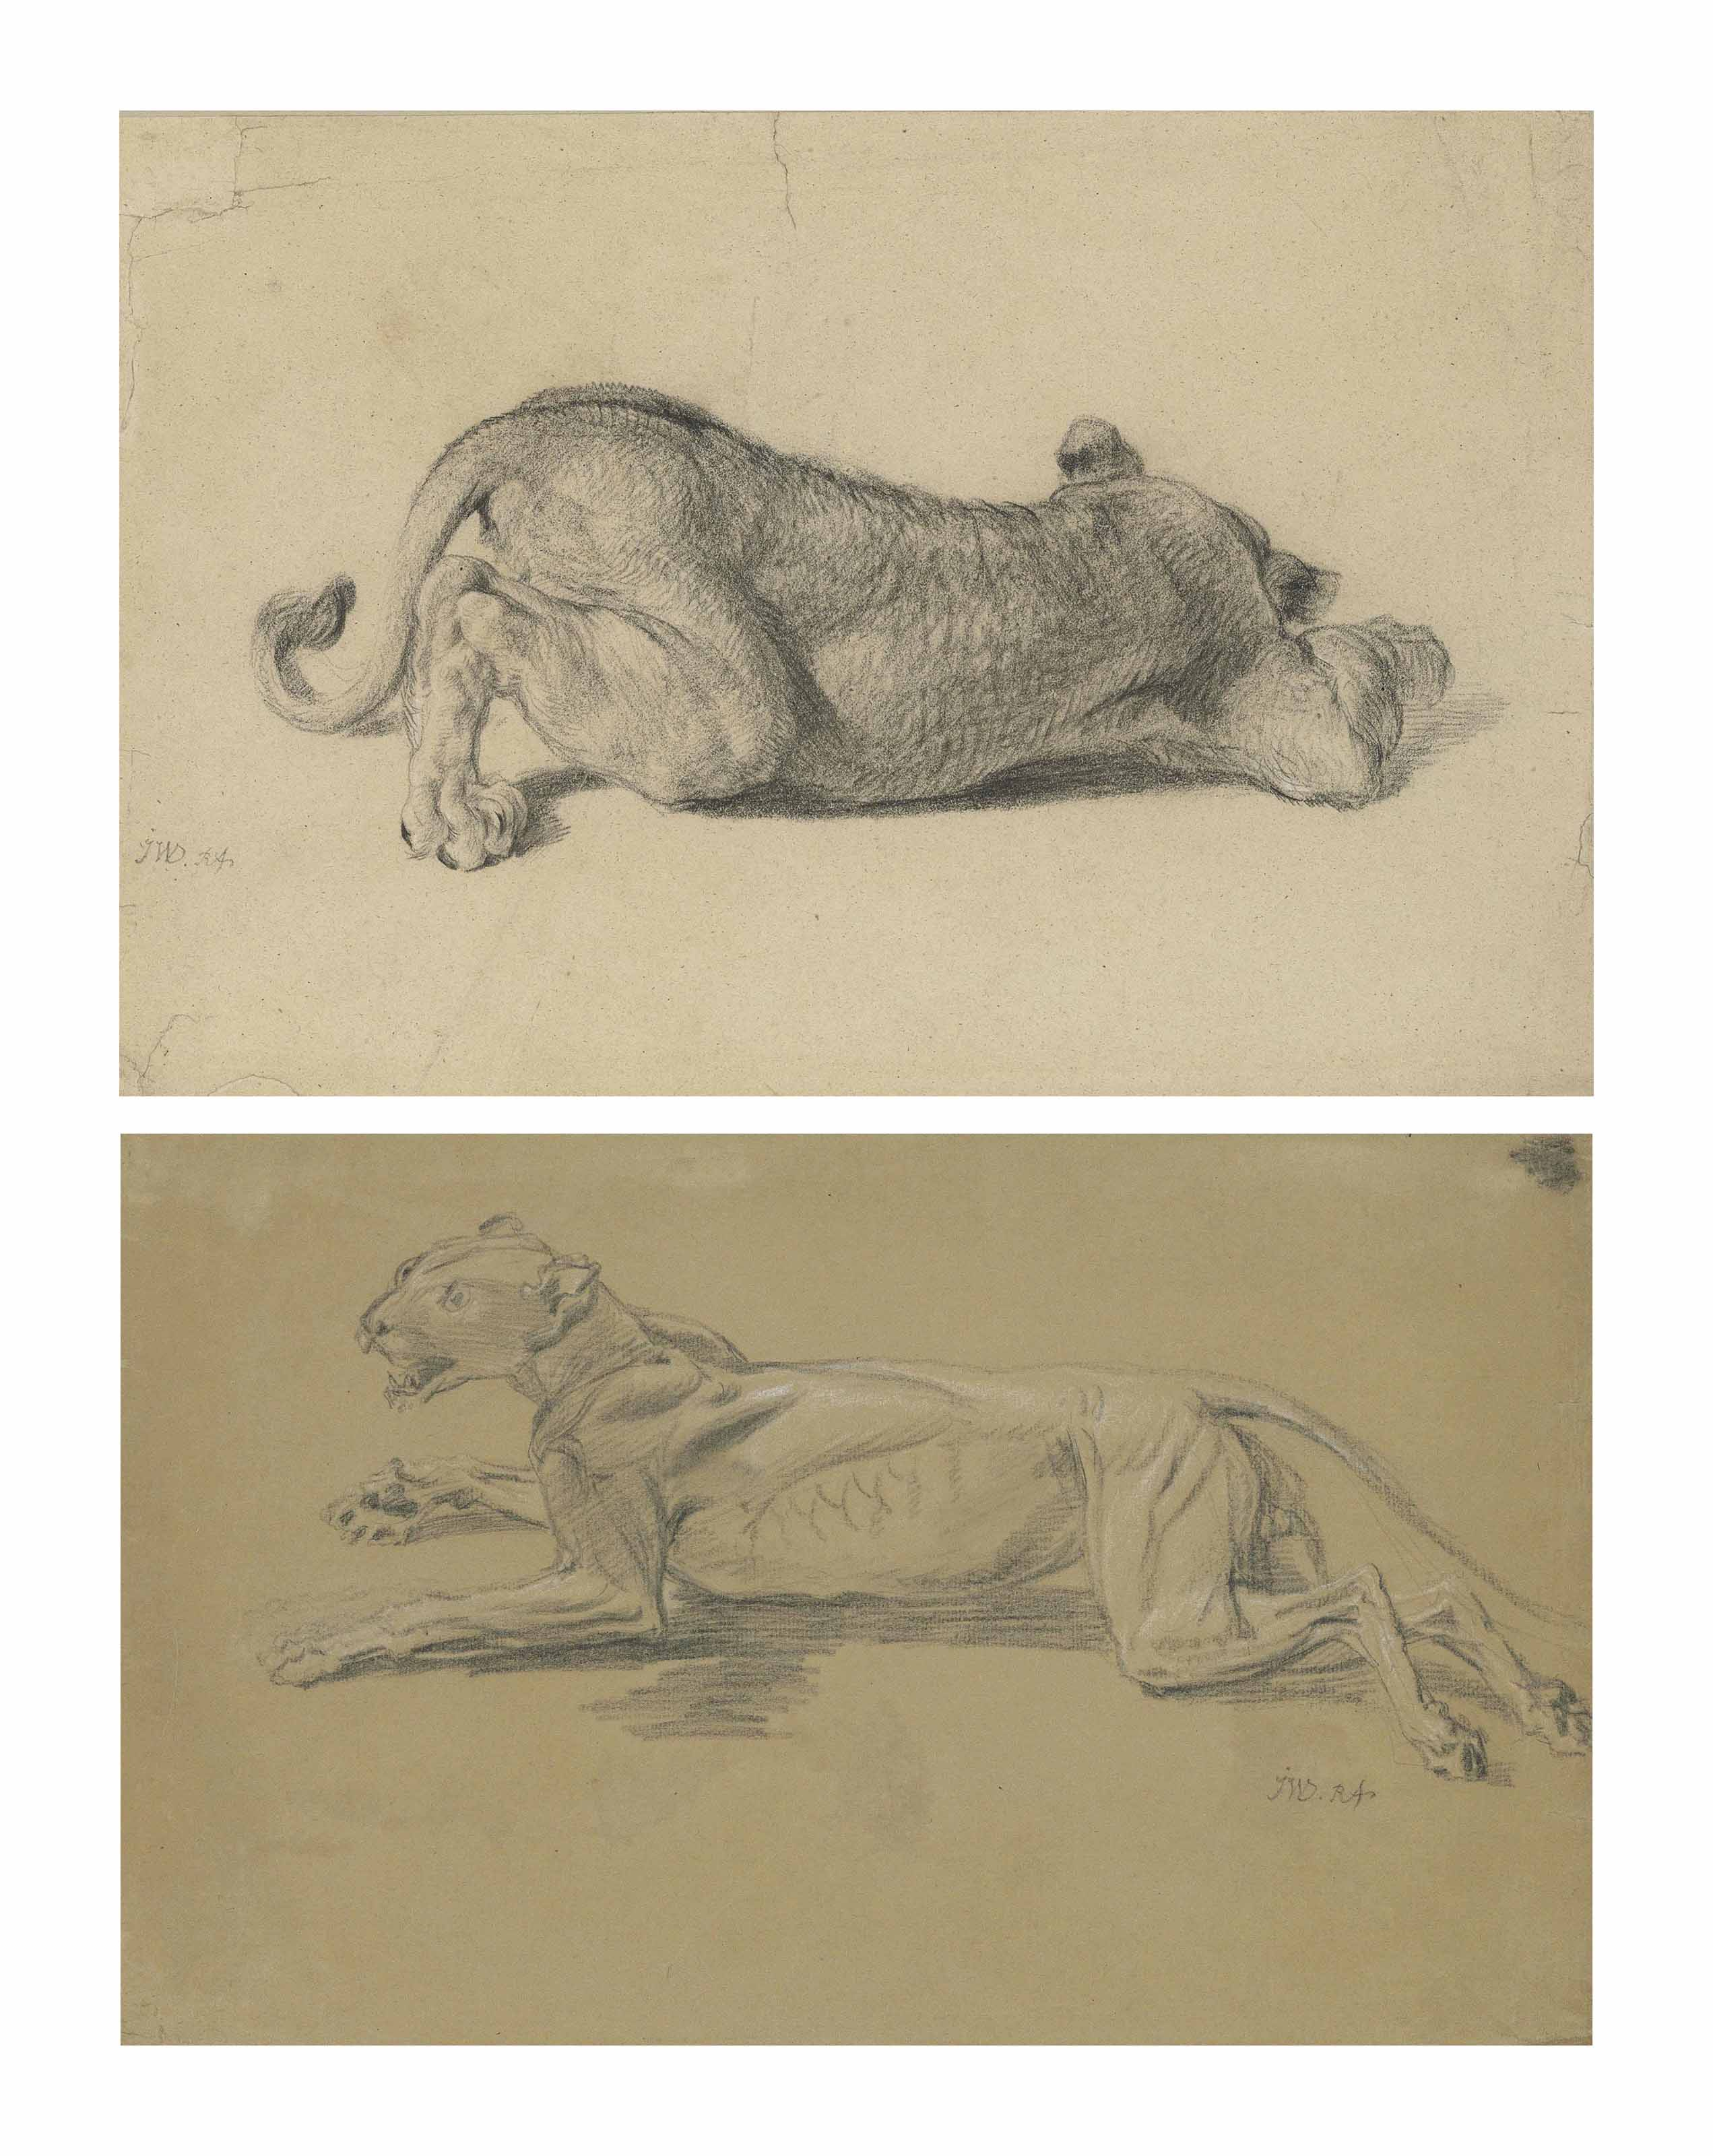 A study of a lioness sleeping; and Two écorché studies of a lioness